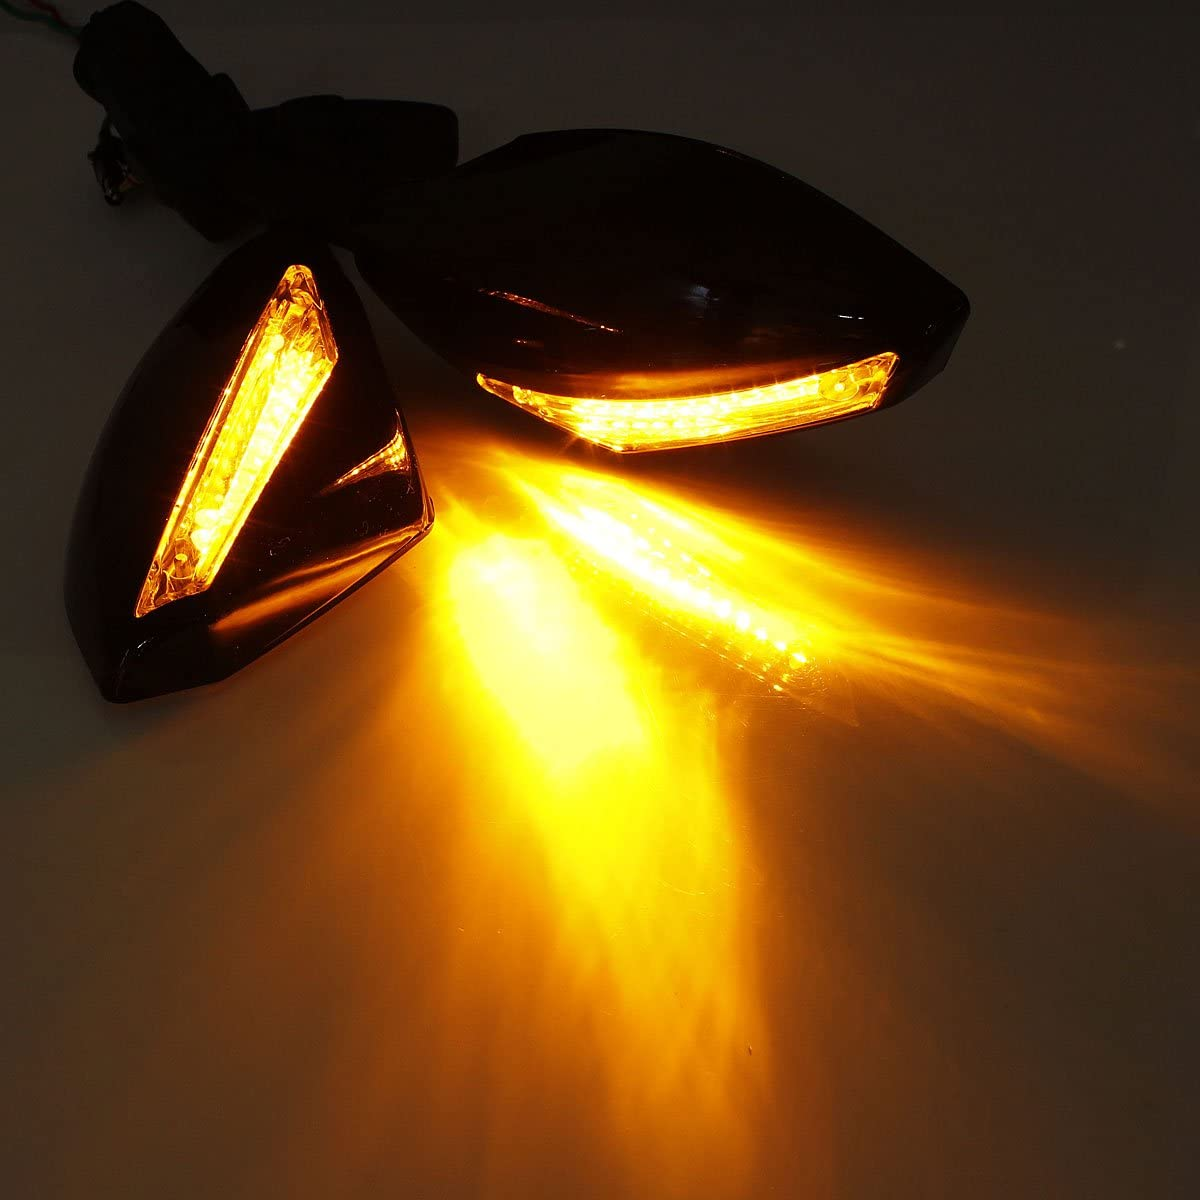 WCHAOEN Motorcycle LED Turn Signal Side Mirrors 180 Degree Adjustable For Honda CBR600 F4 F4i 900 929 954 RC51 New car light